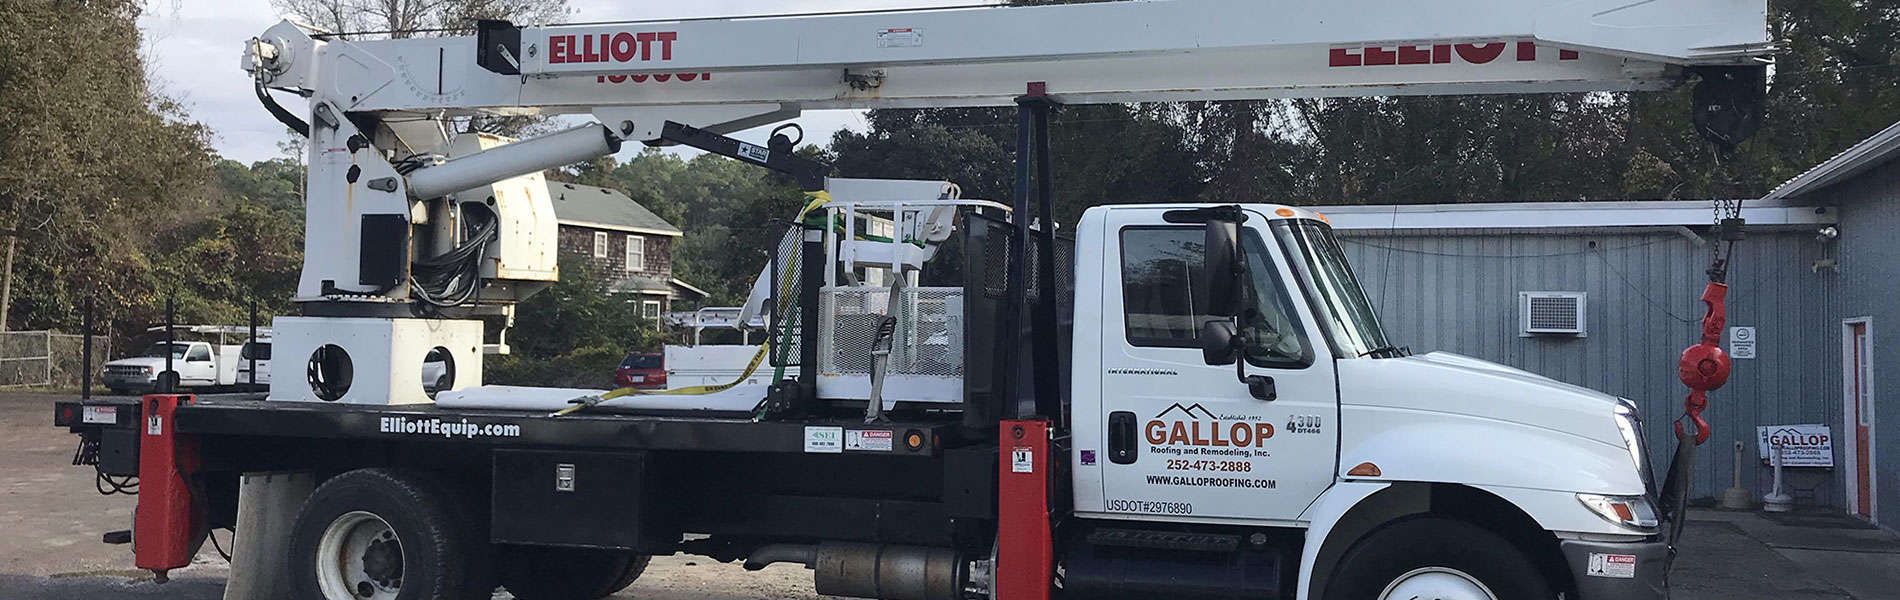 Outer Banks Crane Rental Service   Gallop Roofing & Remodeling, Inc.